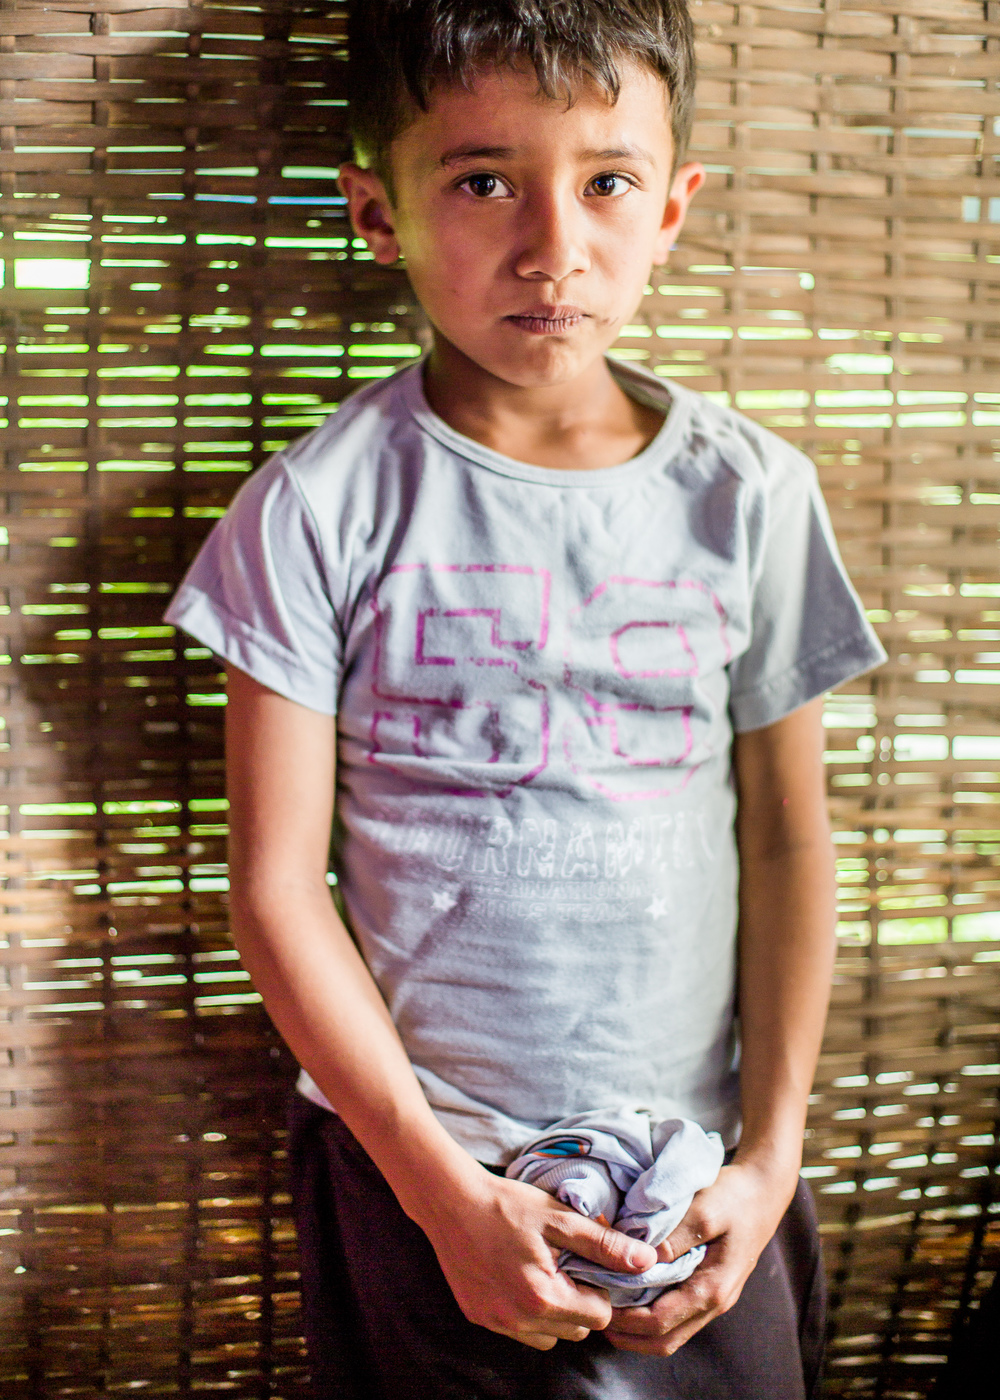 Posing with his new shirt in one of the temporary shelters made from bamboo with plastic sheeting for a roof.